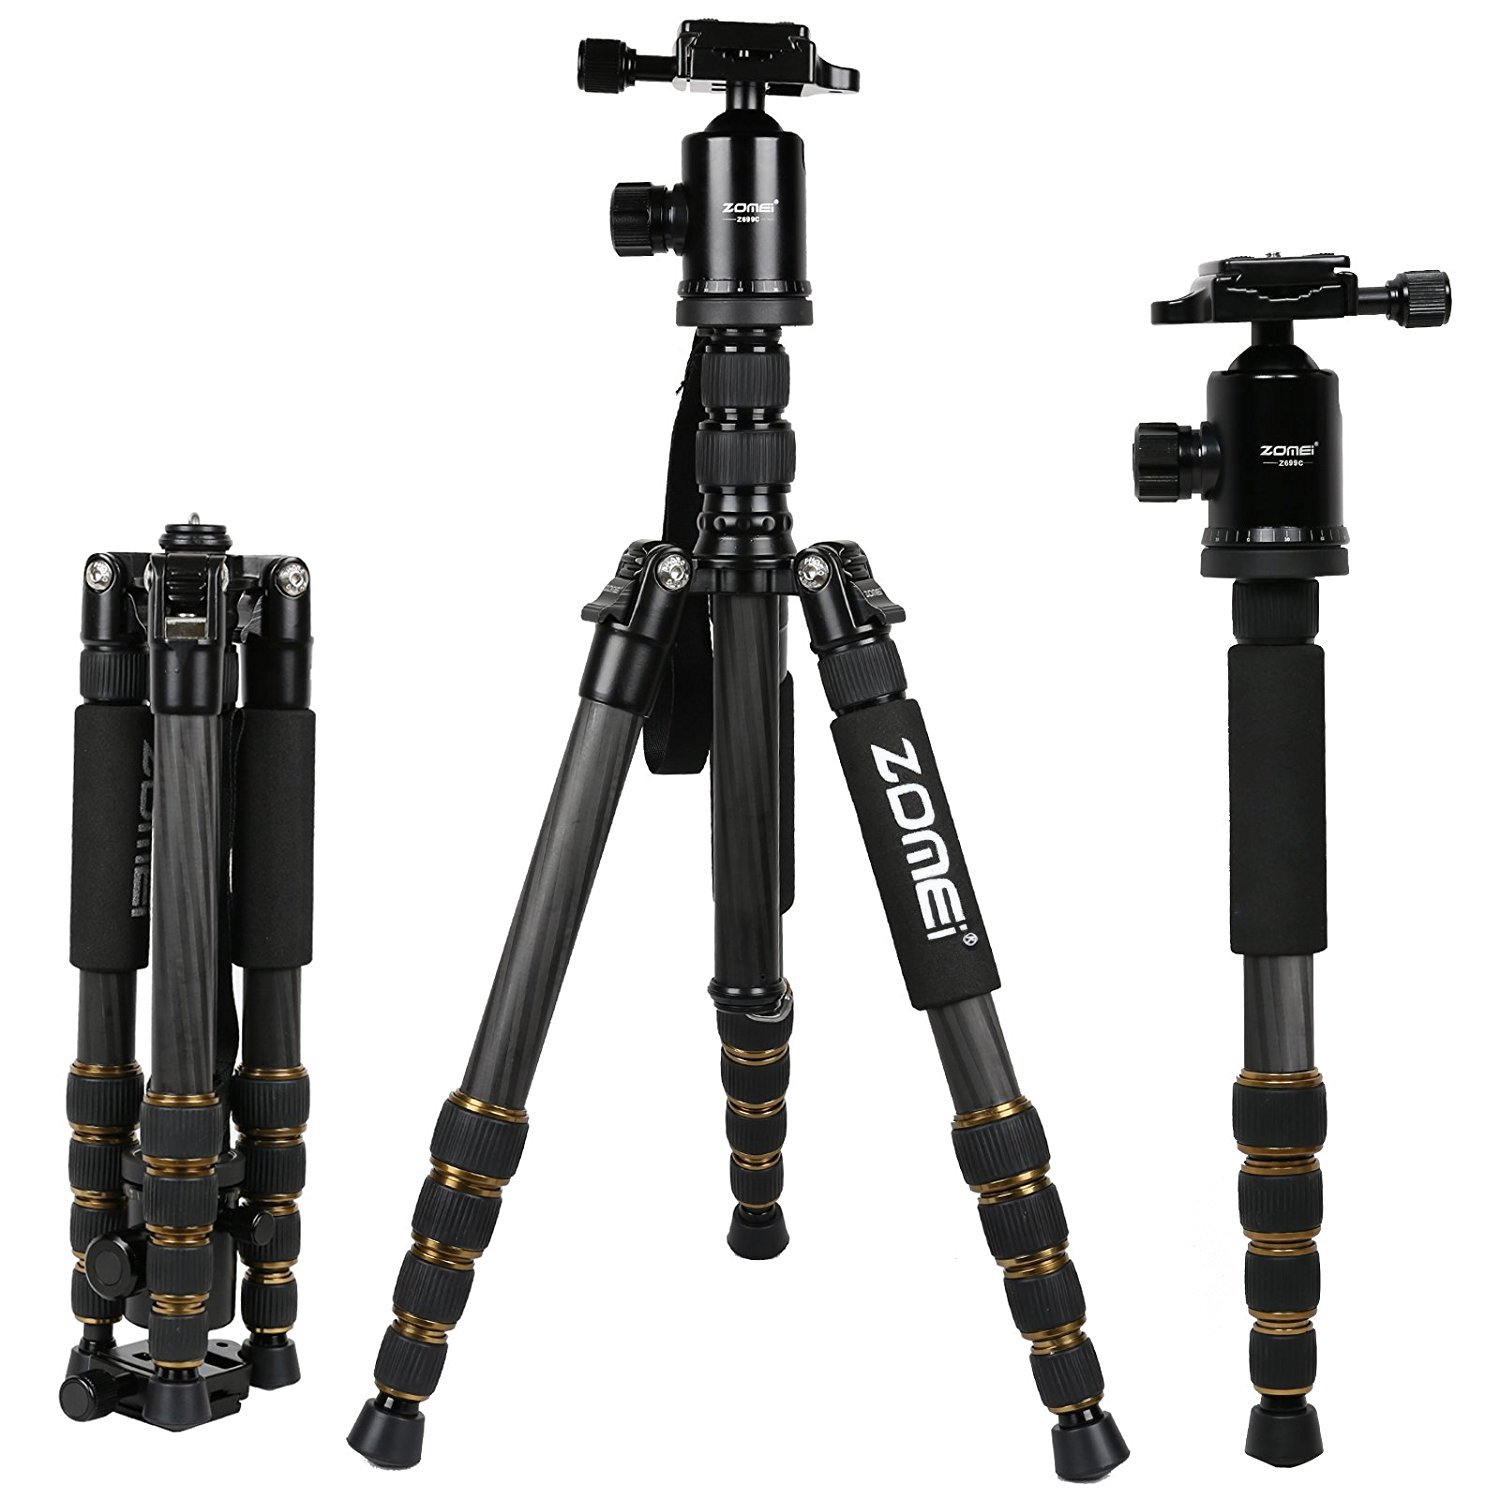 ZOMEI Z699C Carbon Fiber Portable Tripod with Ball Head Compact Travel for Canon,Sony, Nikon, Samsung, Panasonic, Olympus, Kodak, Fuji, Cameras and Video Camera by ZOMEI